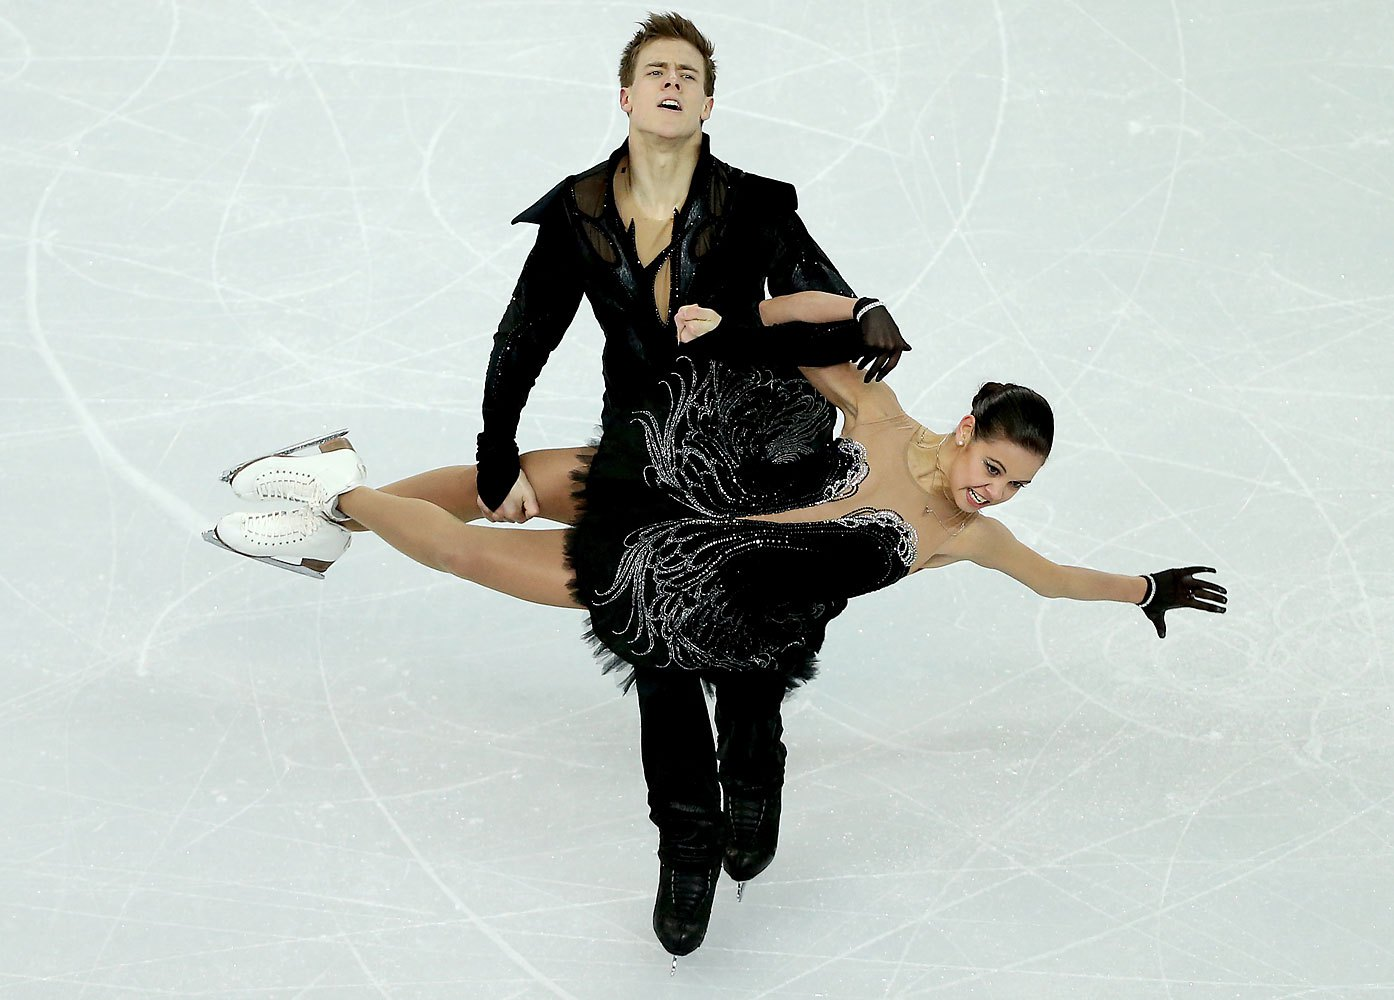 Elena Ilinykh and Nikita Katsalapov of Russia perform in the Ice Dance Free Dance of the Figure Skating team event at the Iceberg Skating Palace, Feb. 9 2014.